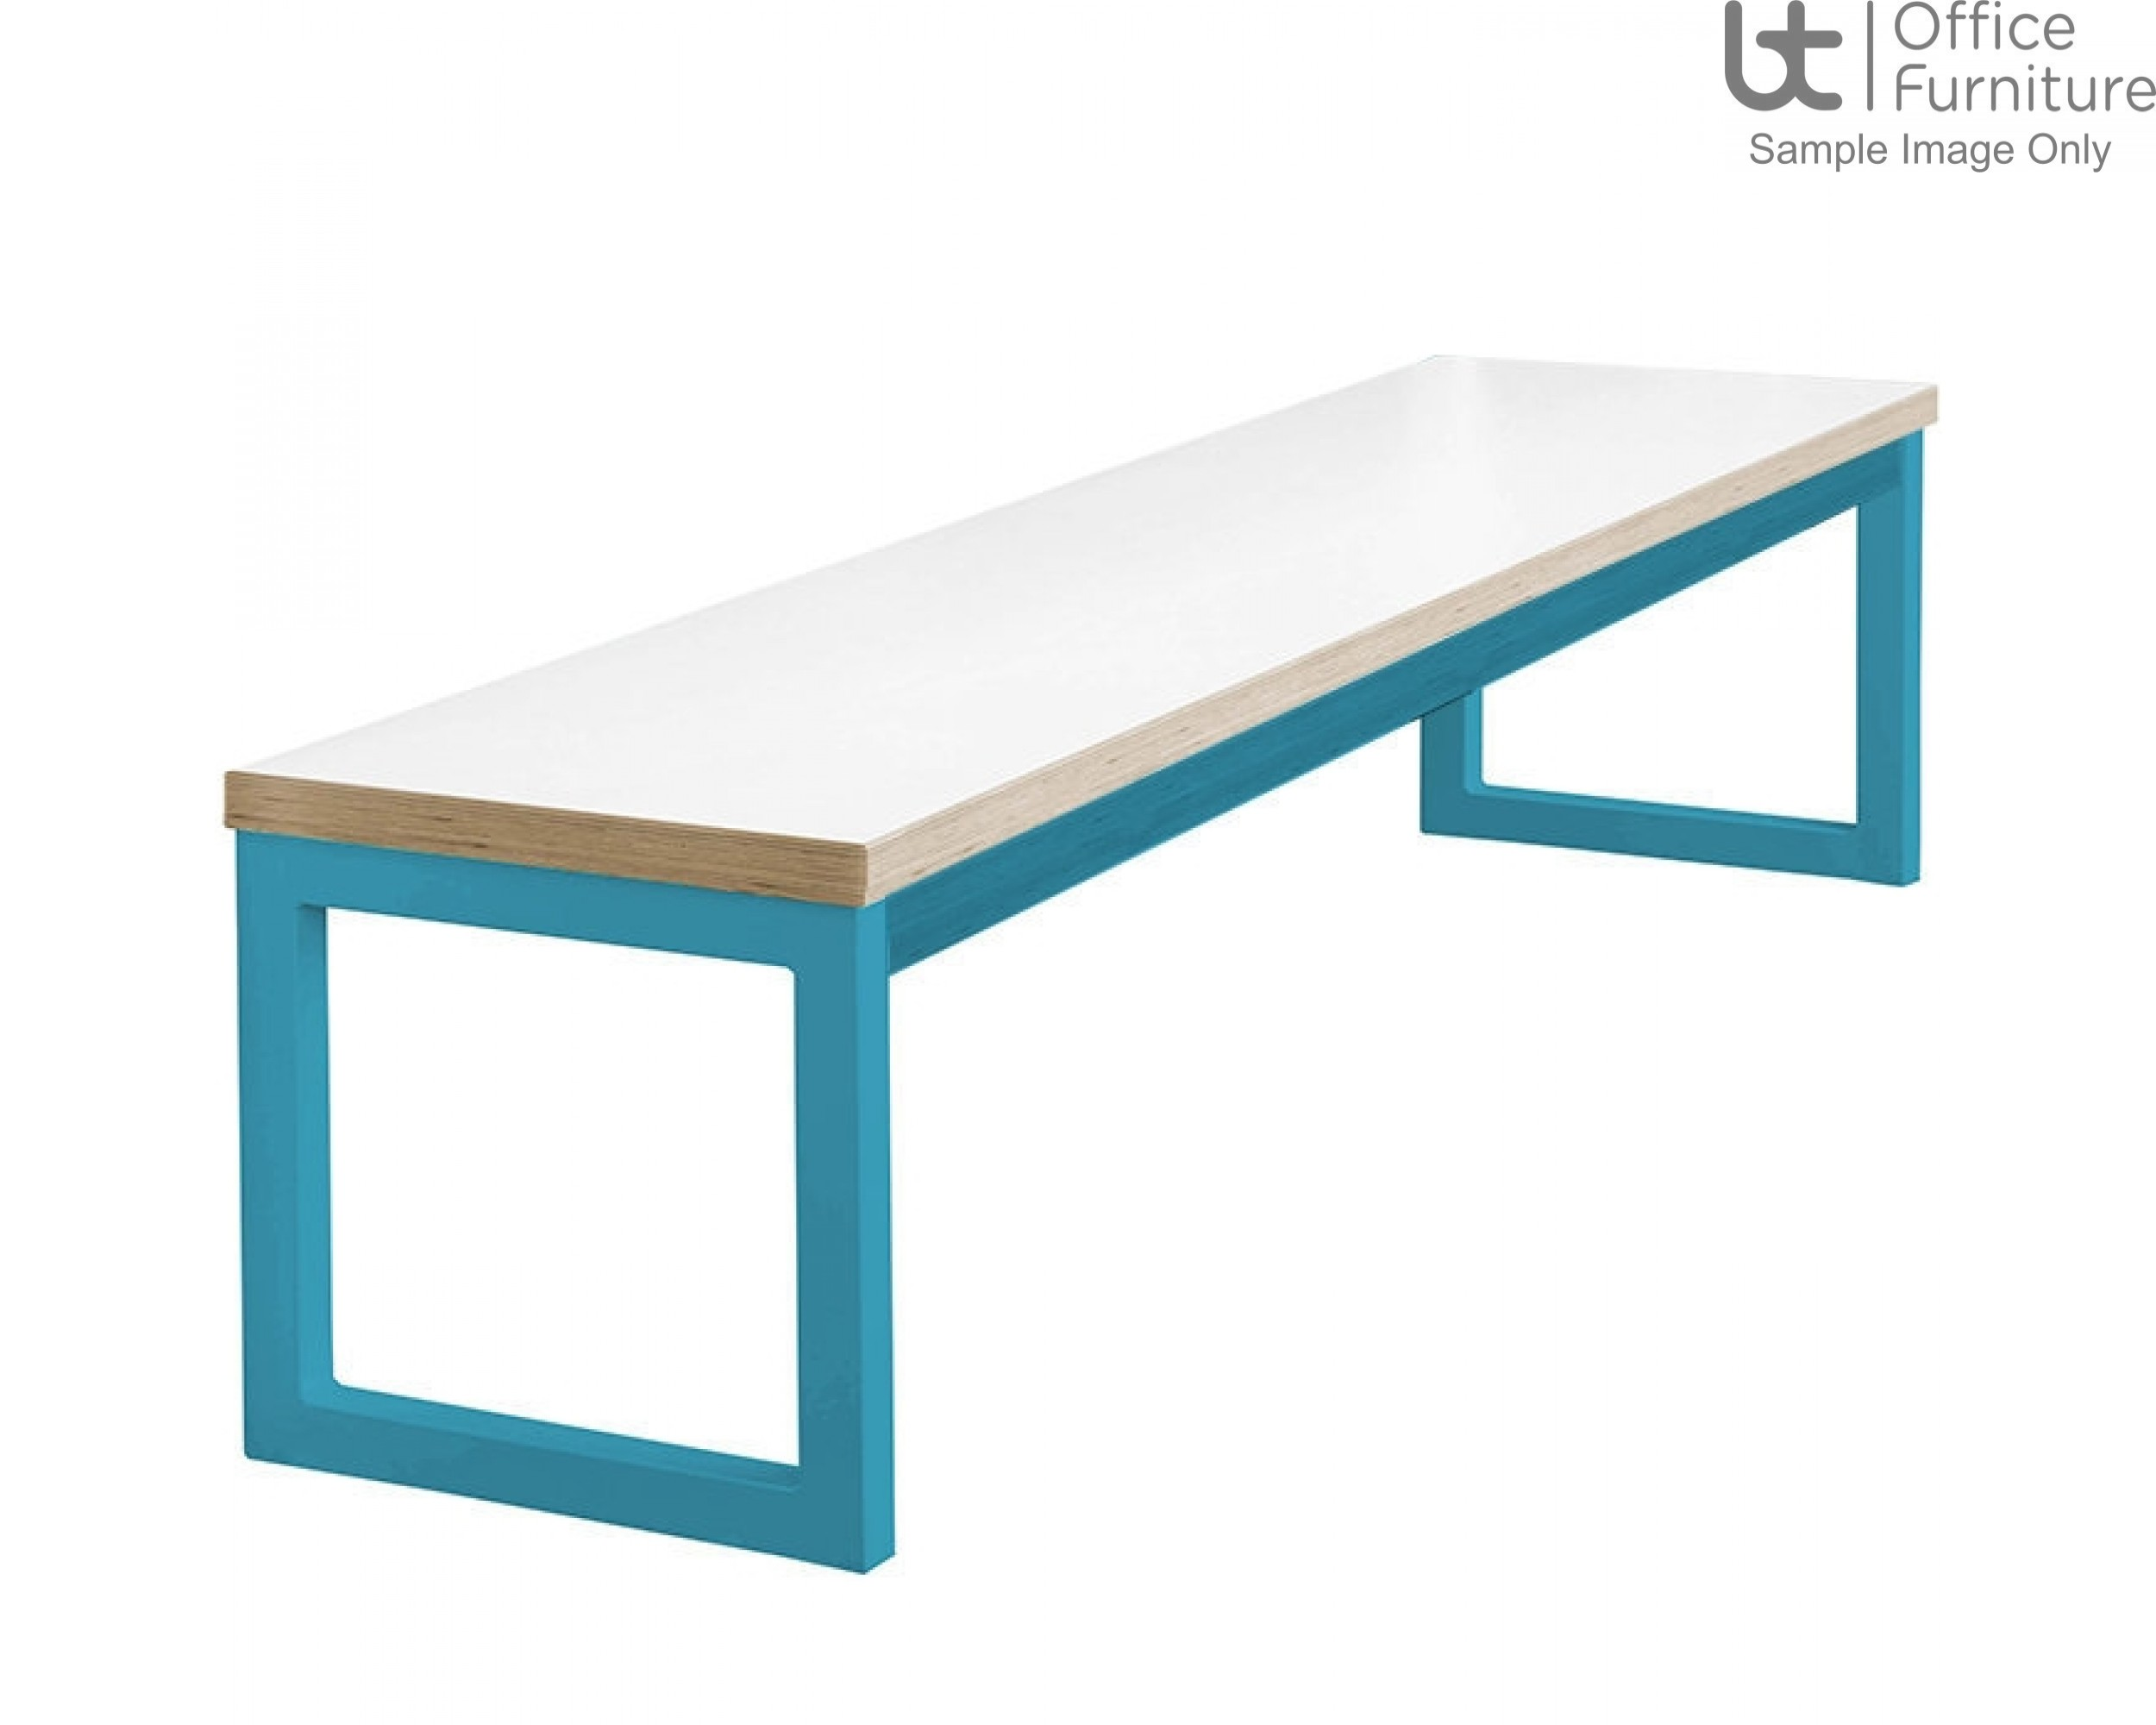 City 40/40 Robust 40mm Laminate Top School Bench Seat W1700mm (Premium Frame Colours)